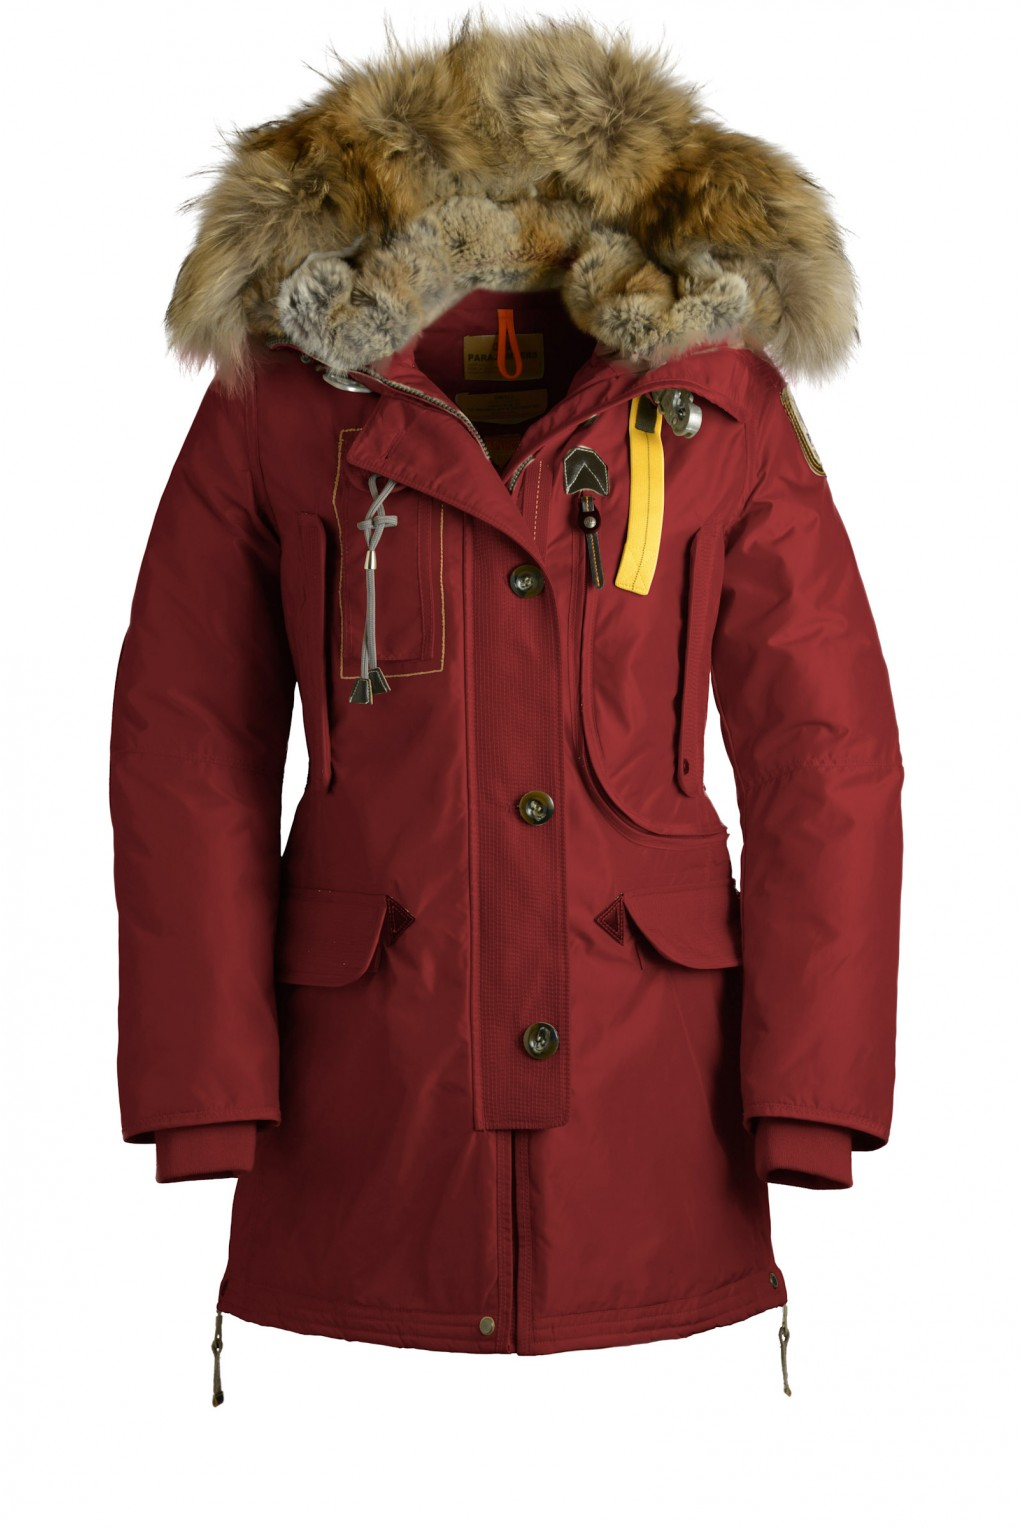 parajumpers KODIAK woman outerwear Red